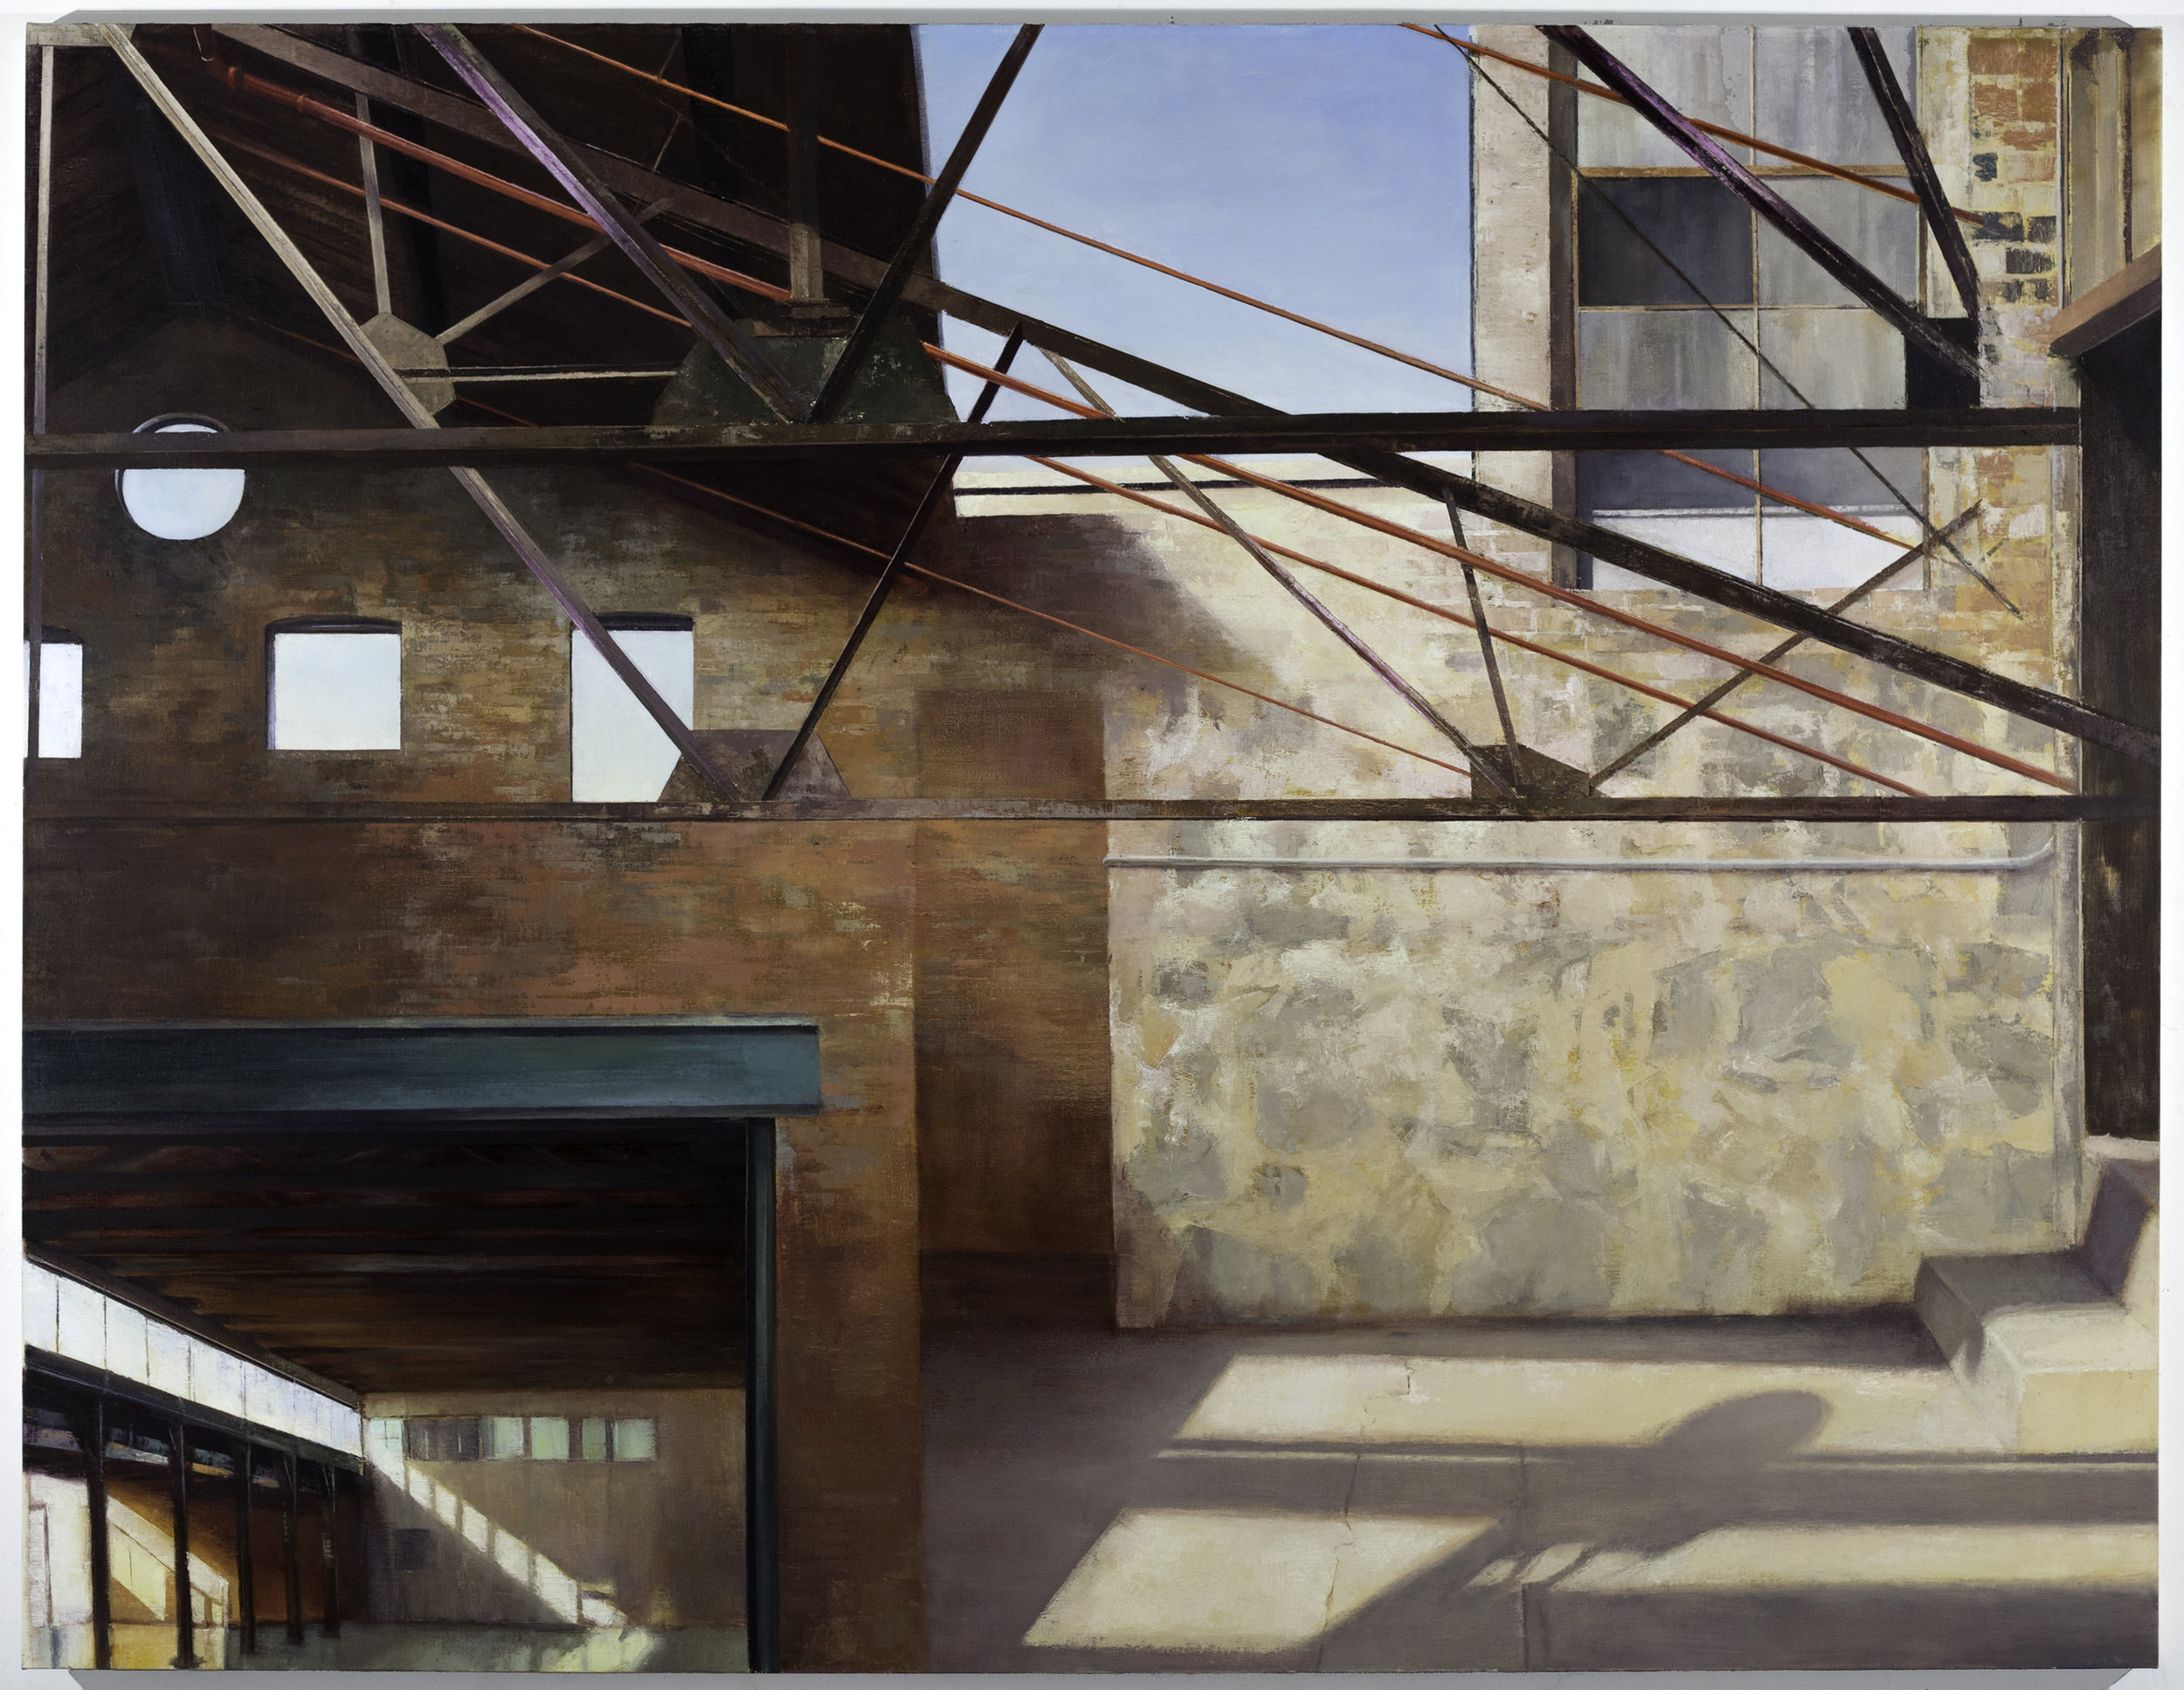 Knockdown Center (After Okada and Abbott),  2016  oil on linen, 56 x 78 in  Commissioned by YoungArts and JP Morgan Chase Art Collection for Miami Art Week